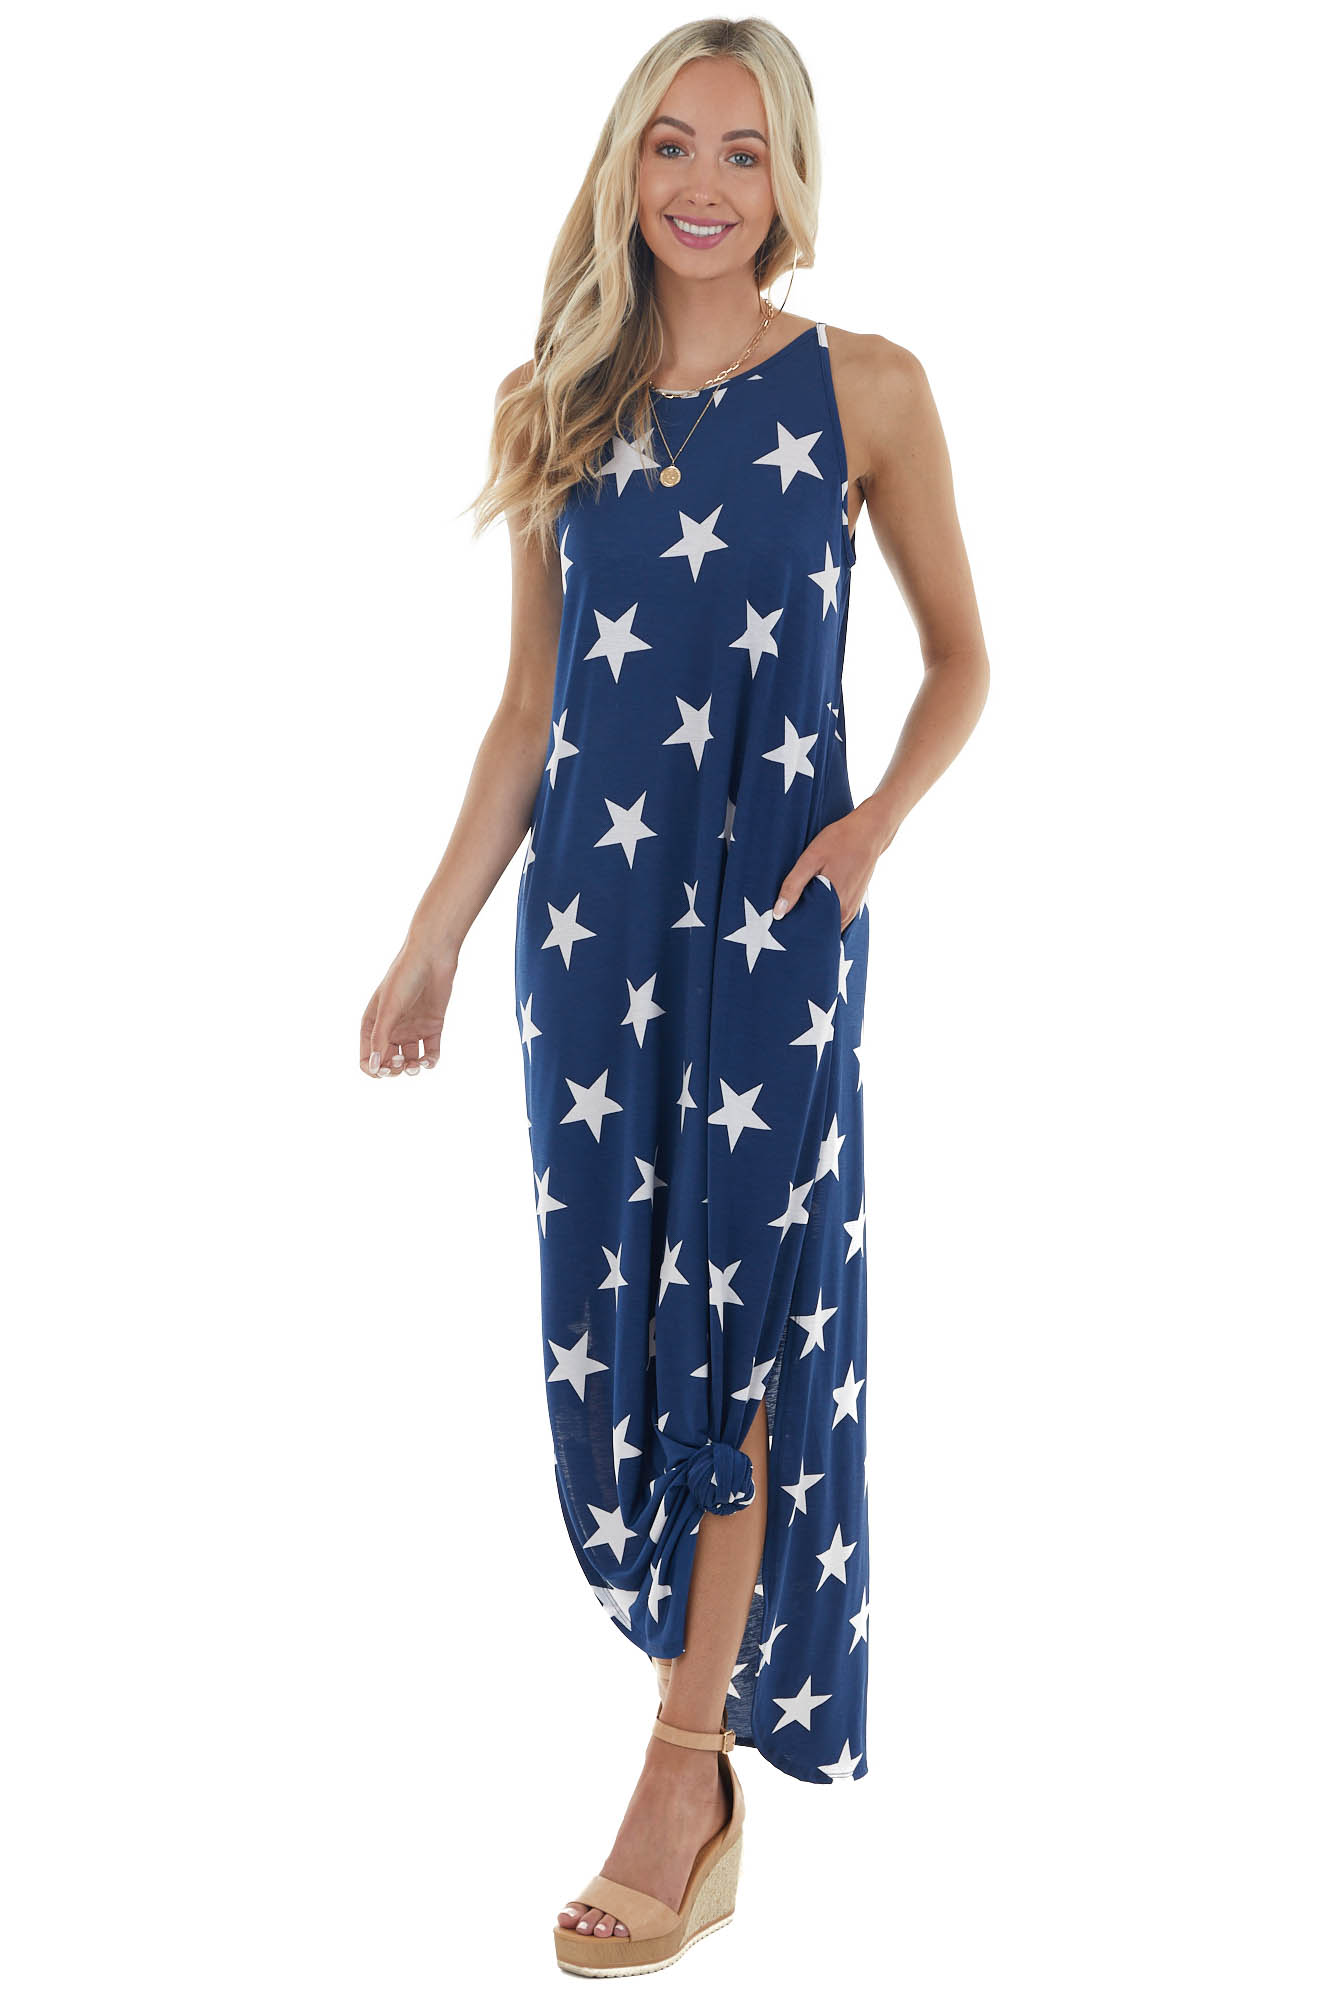 Navy Blue Star Print Sleeveless Maxi Dress with Side Slits